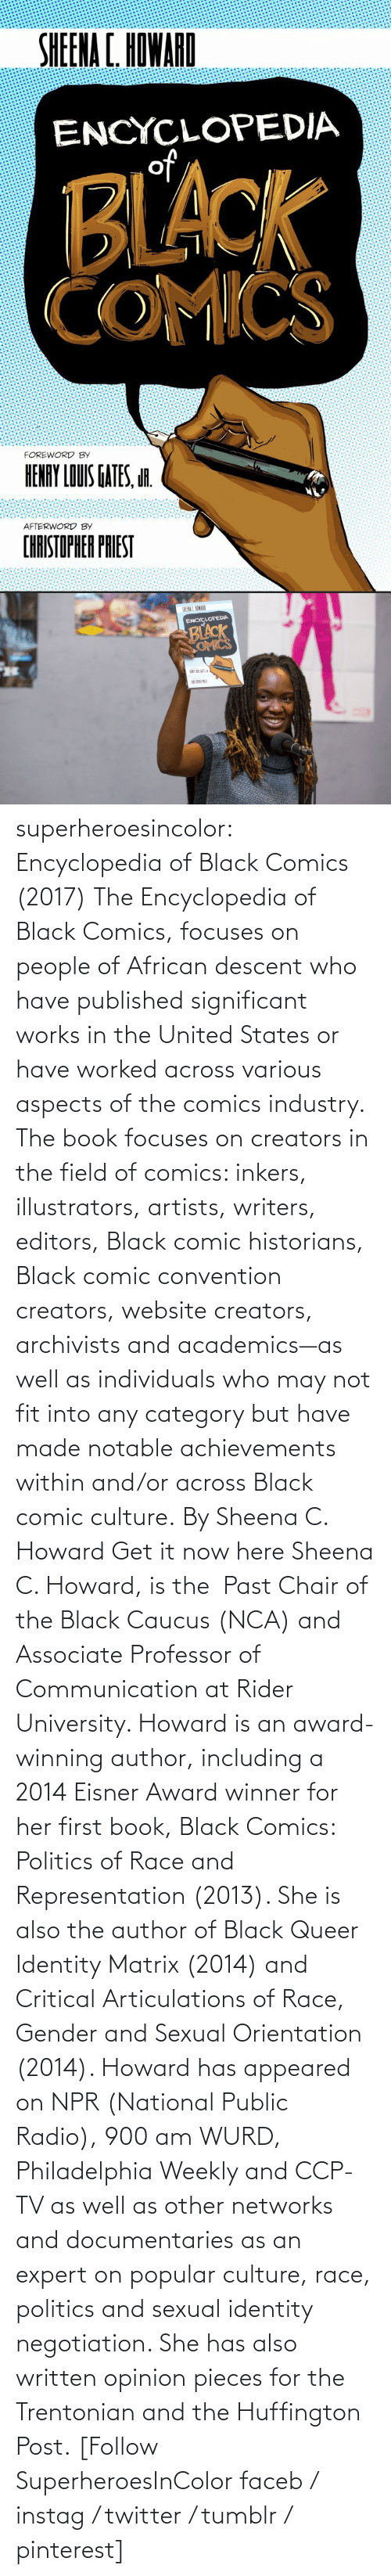 for: superheroesincolor: Encyclopedia of Black Comics (2017) The Encyclopedia of Black Comics, focuses on people of African descent who have published significant works in the United States or have worked across various aspects of the comics industry.  The book focuses on creators in the field of comics: inkers, illustrators, artists, writers, editors, Black comic historians, Black comic convention creators, website creators, archivists and academics—as well as individuals who may not fit into any category but have made notable achievements within and/or across Black comic culture. By Sheena C. Howard Get it now here  Sheena C. Howard, is the  Past Chair of the Black Caucus (NCA) and Associate Professor of Communication at Rider University. Howard is an award-winning author, including a 2014 Eisner Award winner for her first book, Black Comics: Politics of Race and Representation (2013). She is also the author of Black Queer Identity Matrix (2014) and Critical Articulations of Race, Gender and Sexual Orientation (2014). Howard has appeared on NPR (National Public Radio), 900 am WURD, Philadelphia Weekly and CCP-TV as well as other networks and documentaries as an expert on popular culture, race, politics and sexual identity negotiation. She has also written opinion pieces for the Trentonian and the Huffington Post.   [Follow SuperheroesInColor faceb / instag / twitter / tumblr / pinterest]